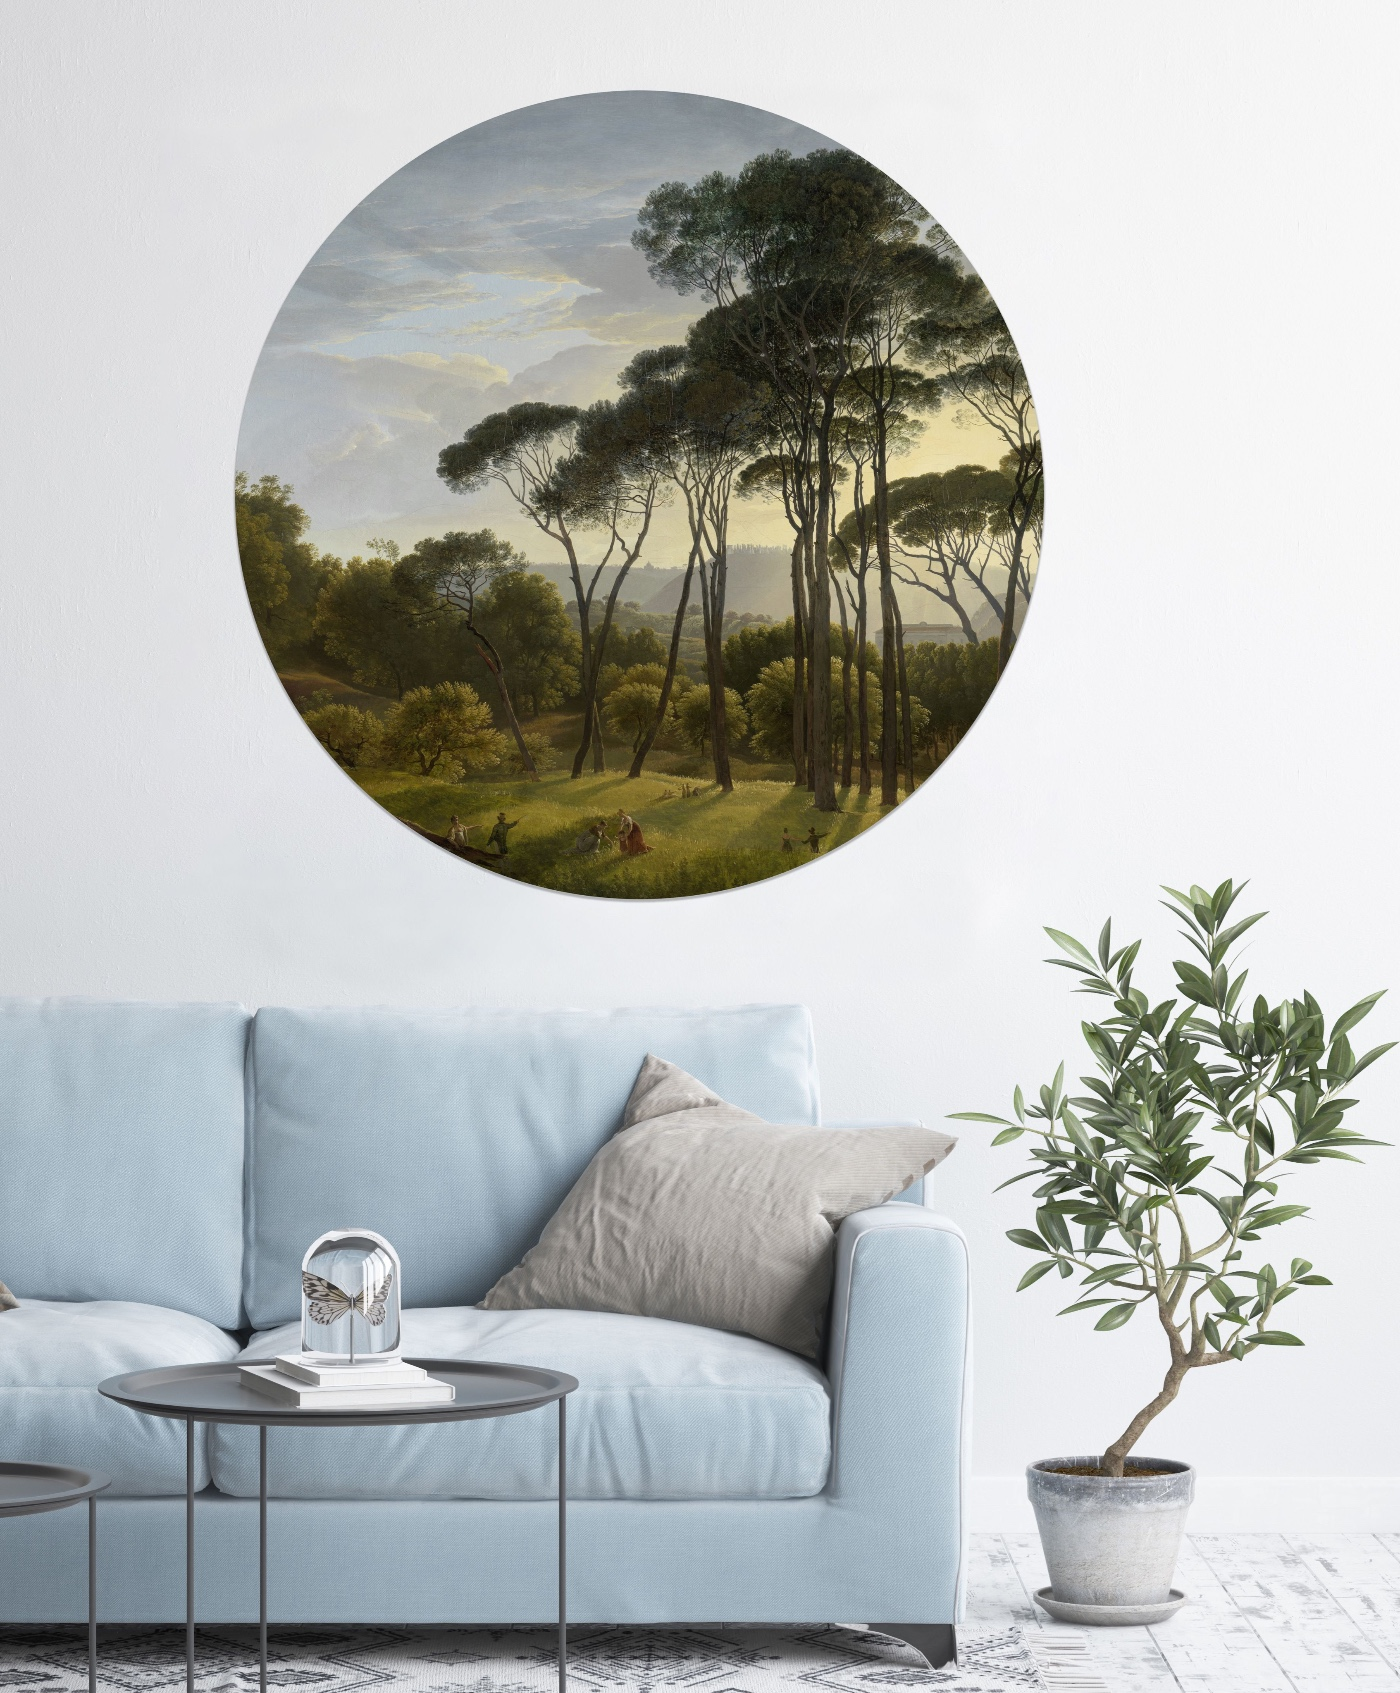 Decals, Old Masters, Interior design, Decor, Couch, Coffee table, Pot plant